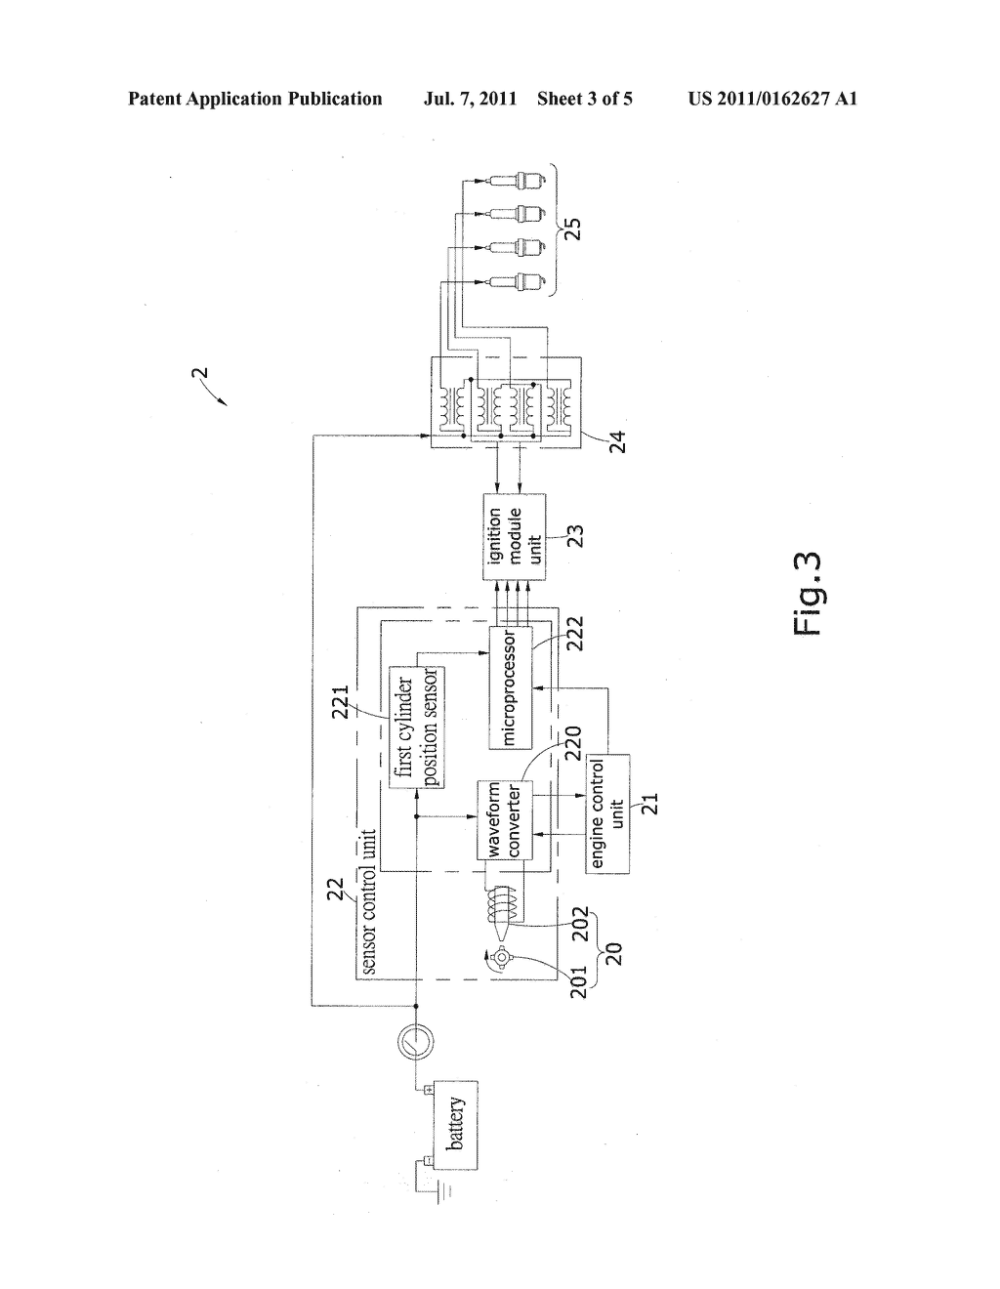 medium resolution of mixed electronic ignition system integrated with a distributor structure and an engine control unit diagram schematic and image 04